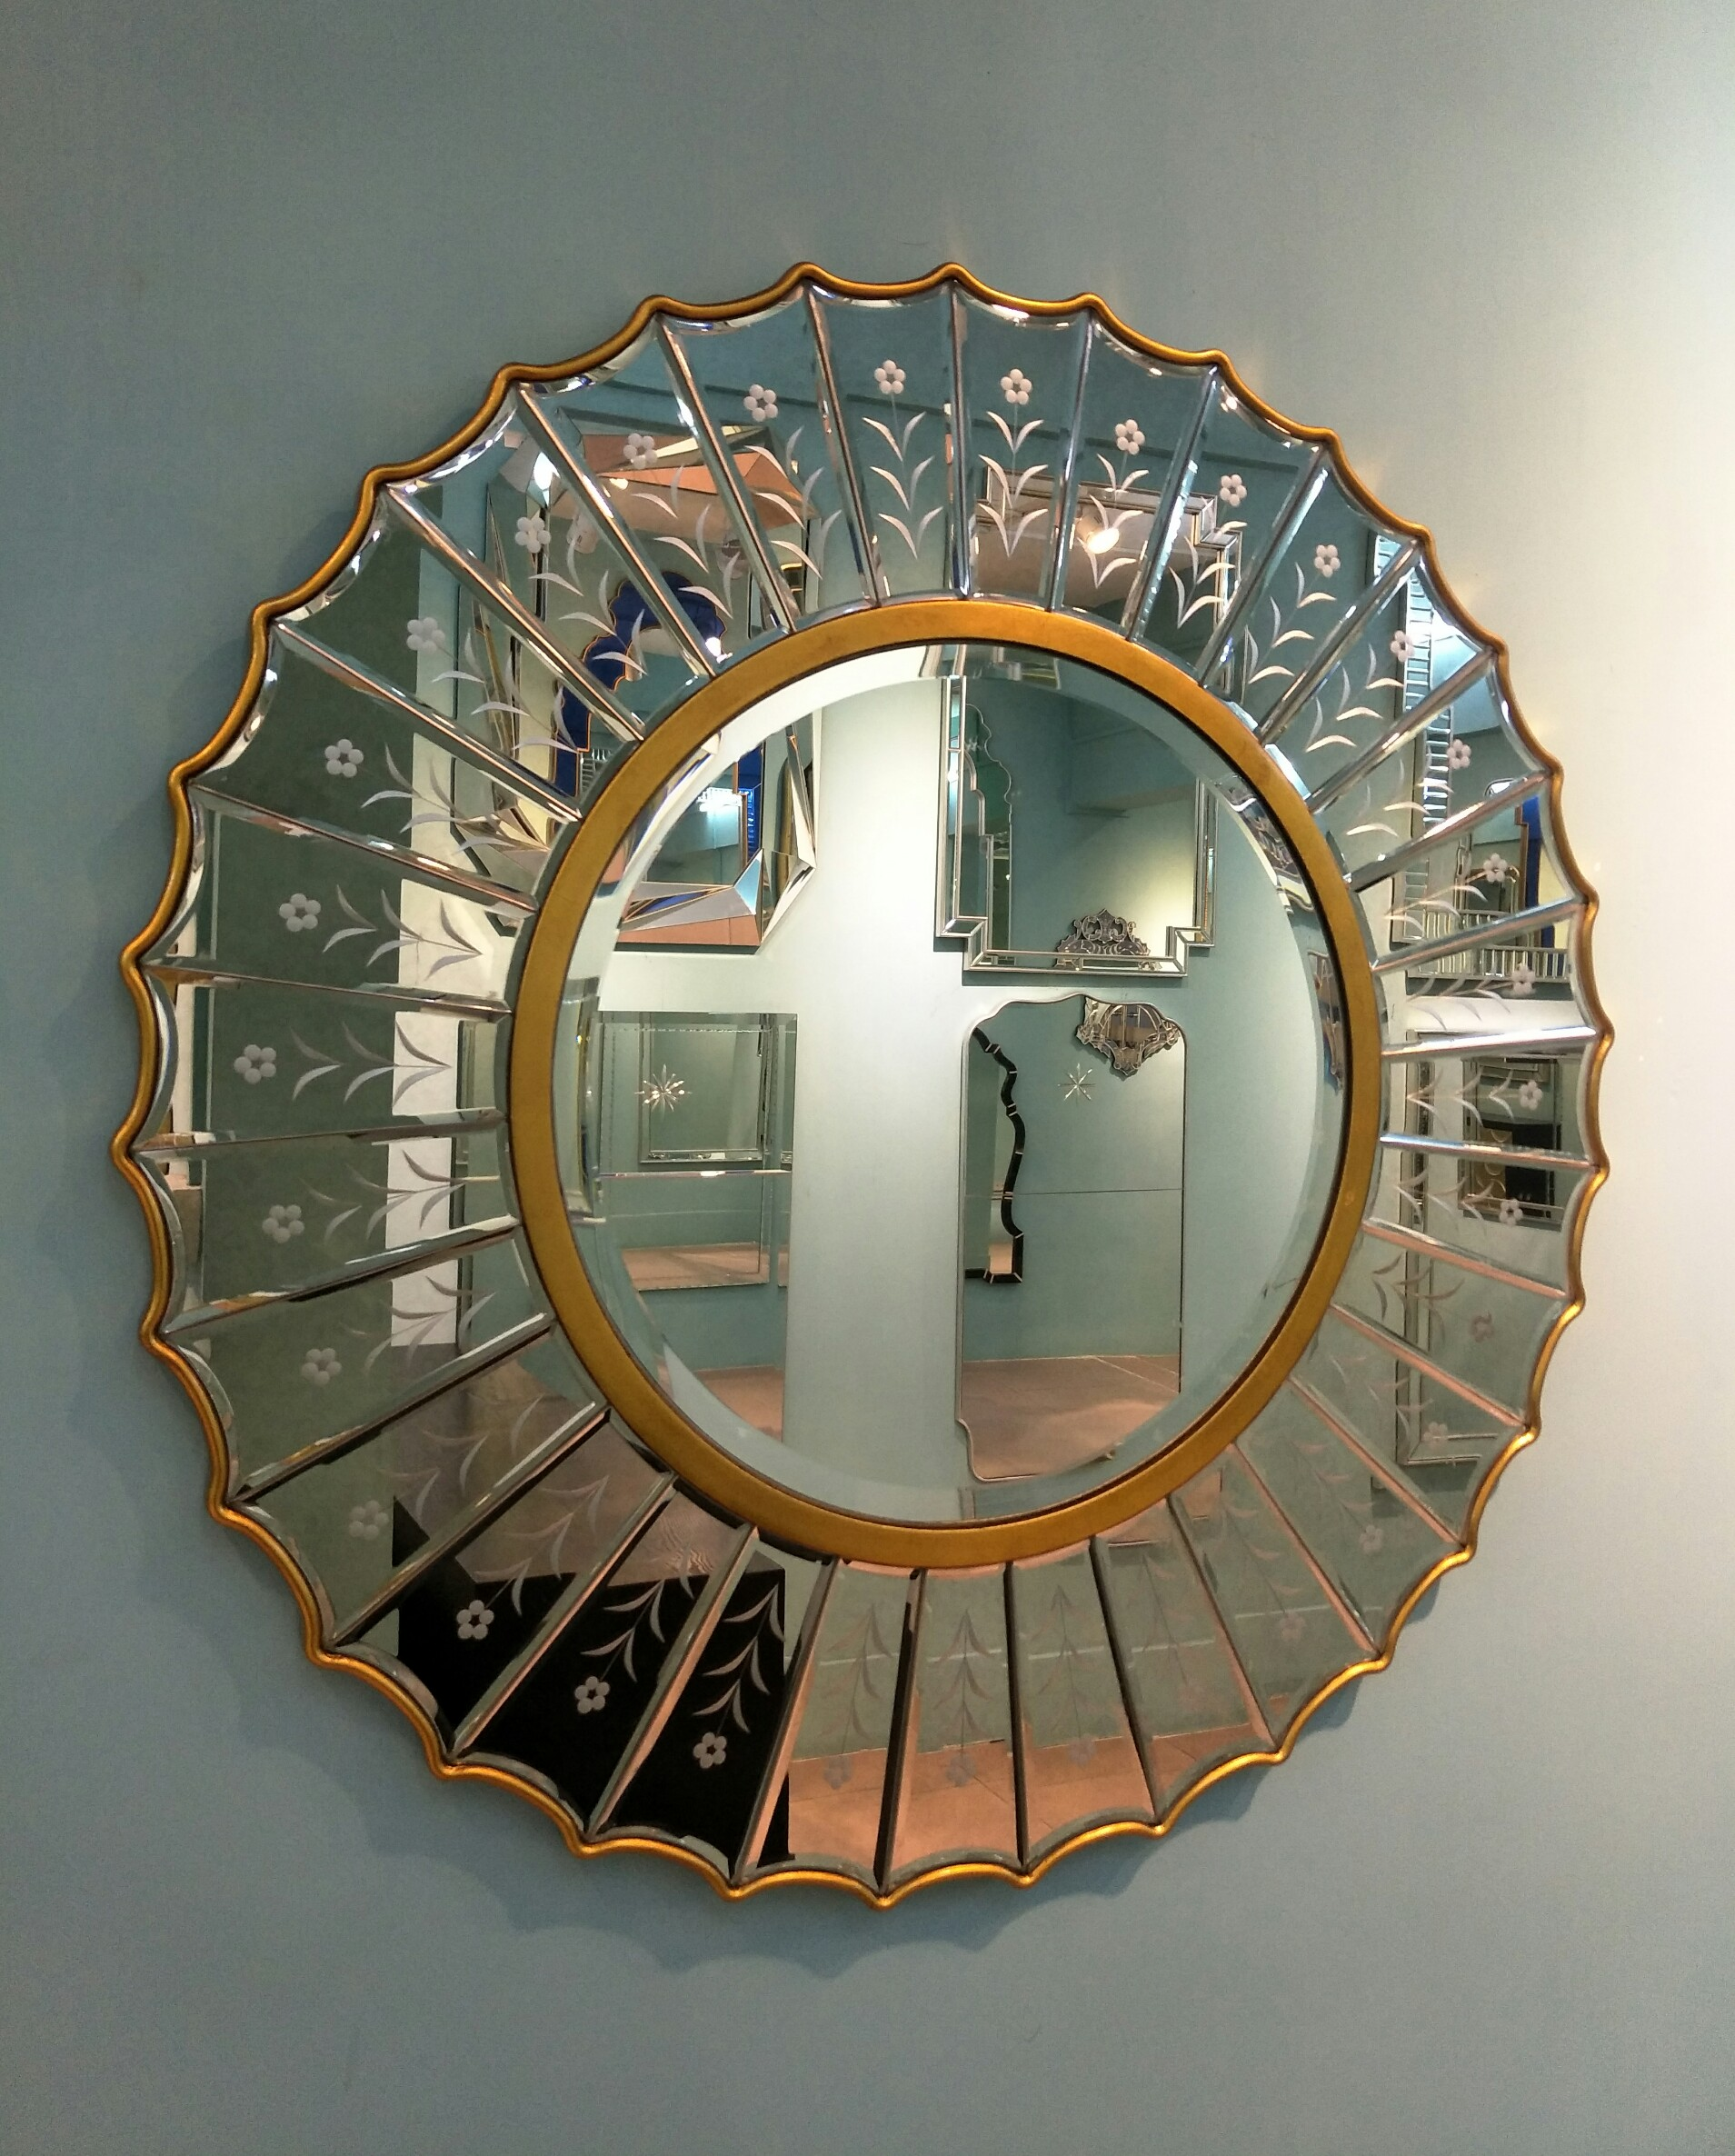 Classic iron devorative wall mirror with silver leafing for livingroom/dining room